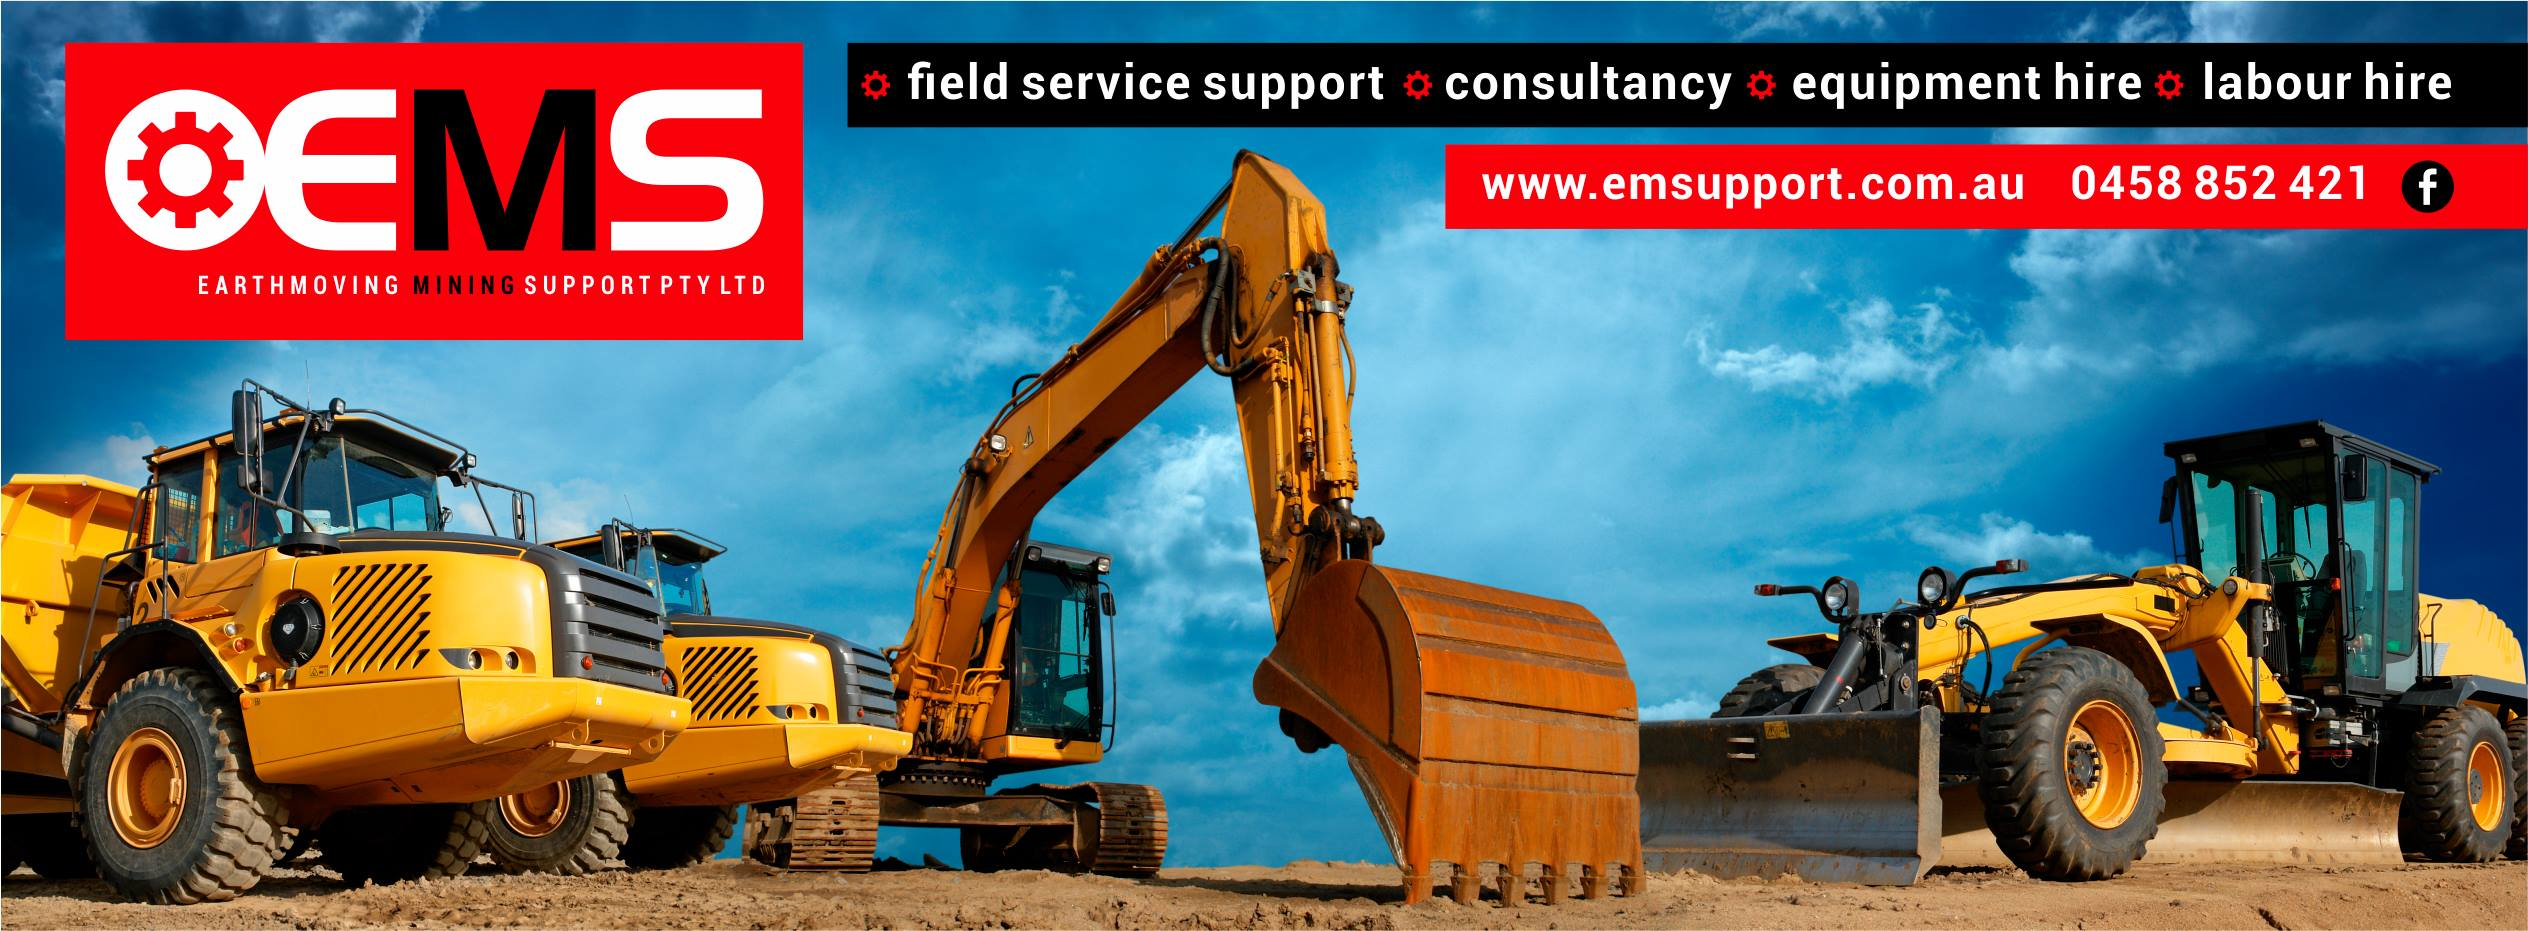 Earthmoving Mining Support, Earthmoving, mining, construction, road transport equipment, field service support, consultancy, equipment hire, labour hire, heavy equipment repair business mines, hydraulic torque wrenches, rad guns, jacking, pushing equipment, electronic diagnostic equipment, custom jobs, repairs, rebuilds, Queensland